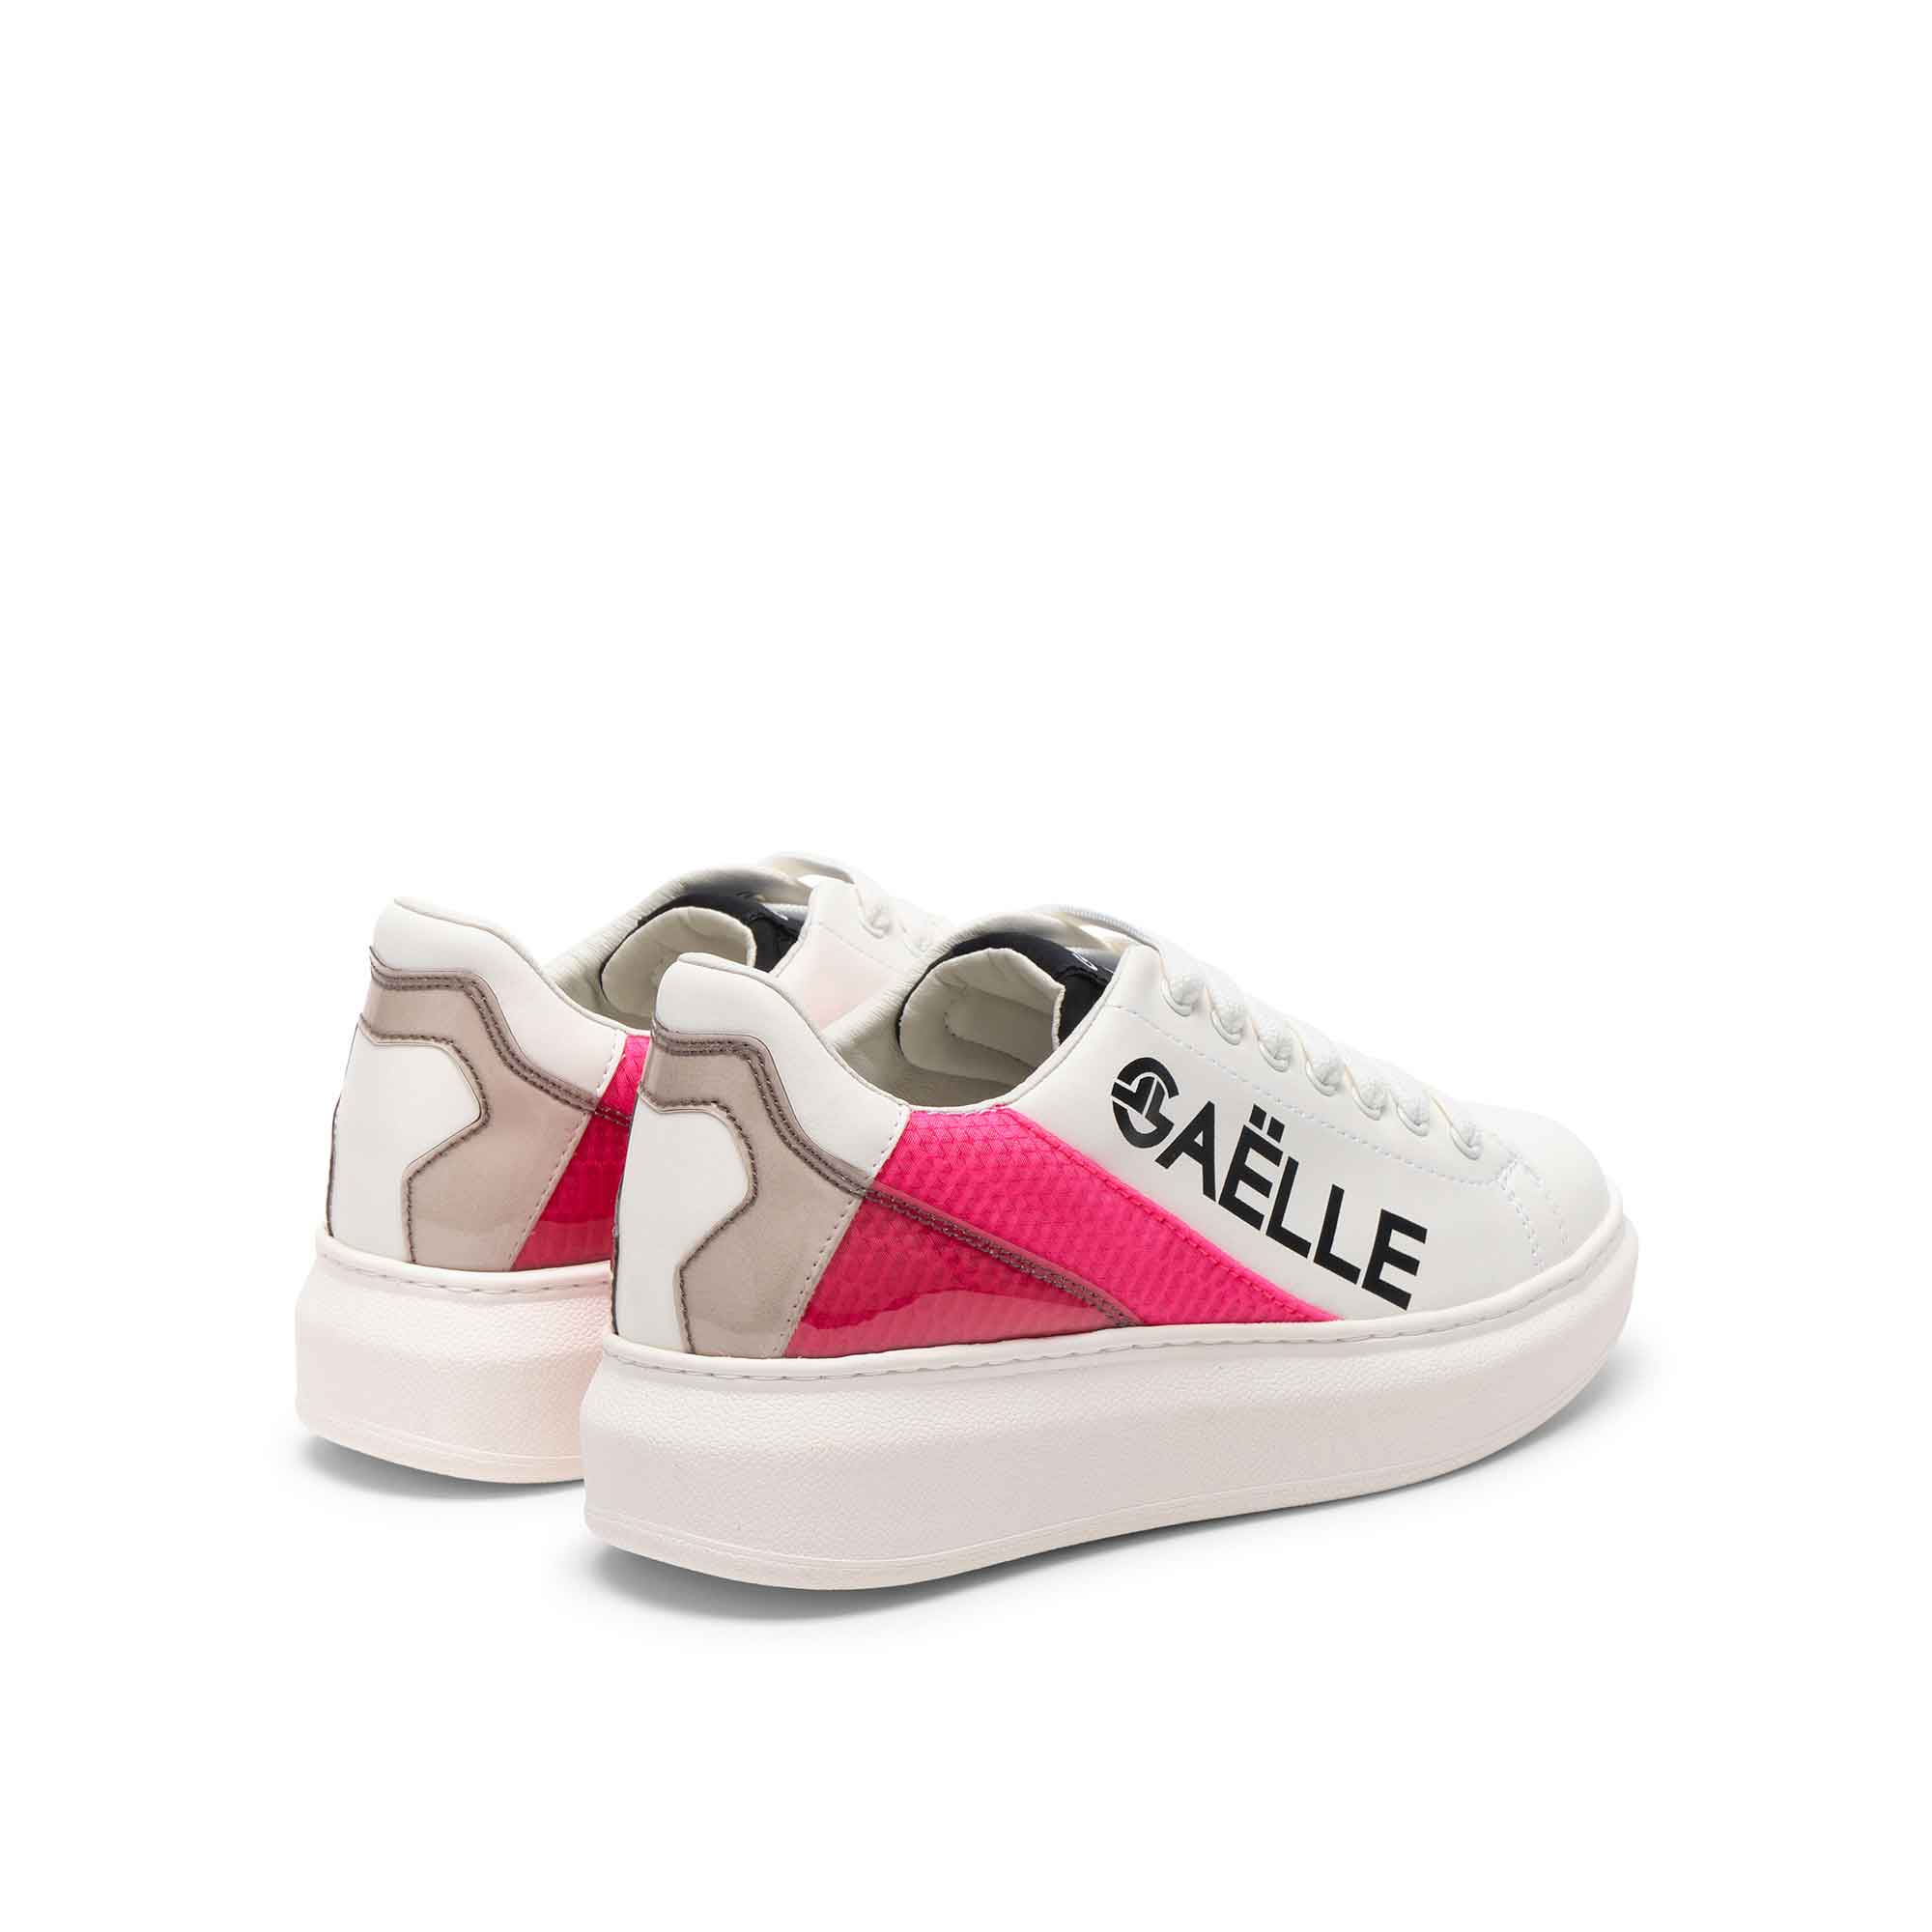 SNEAKERS - GBDA1810 - GAELLE PARIS